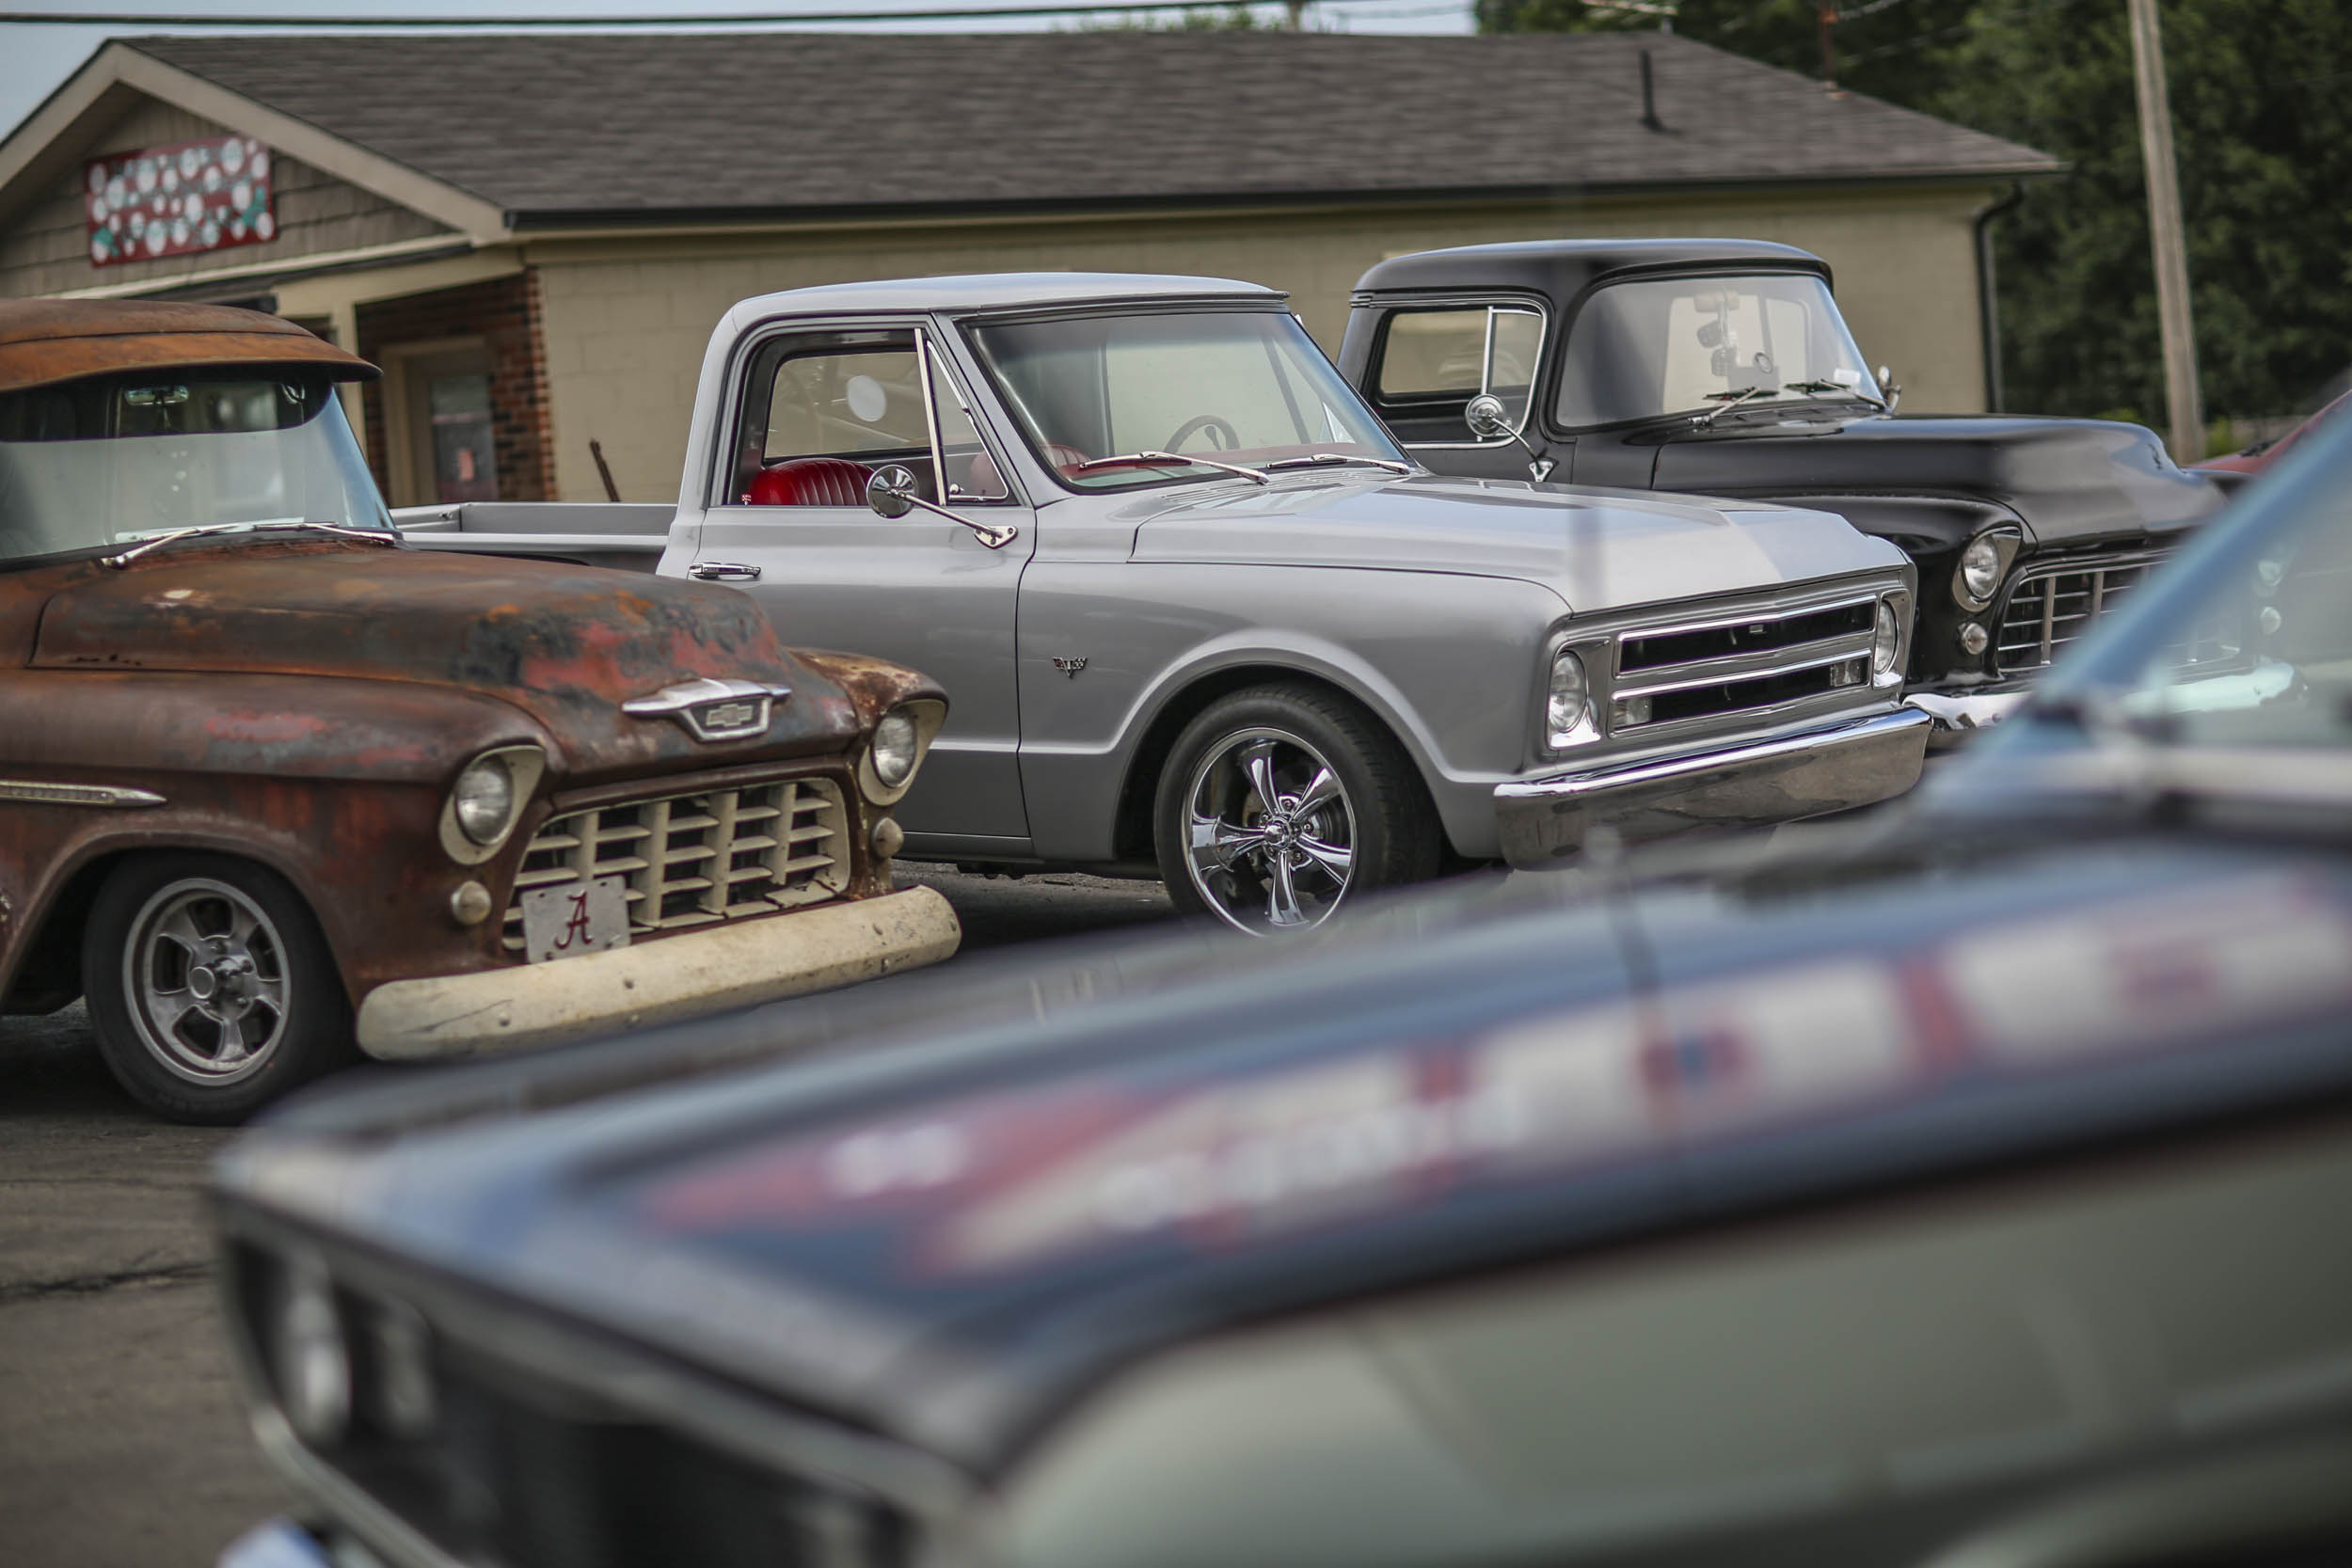 Any gas station can be a car show. This one just happened to be a truck show.